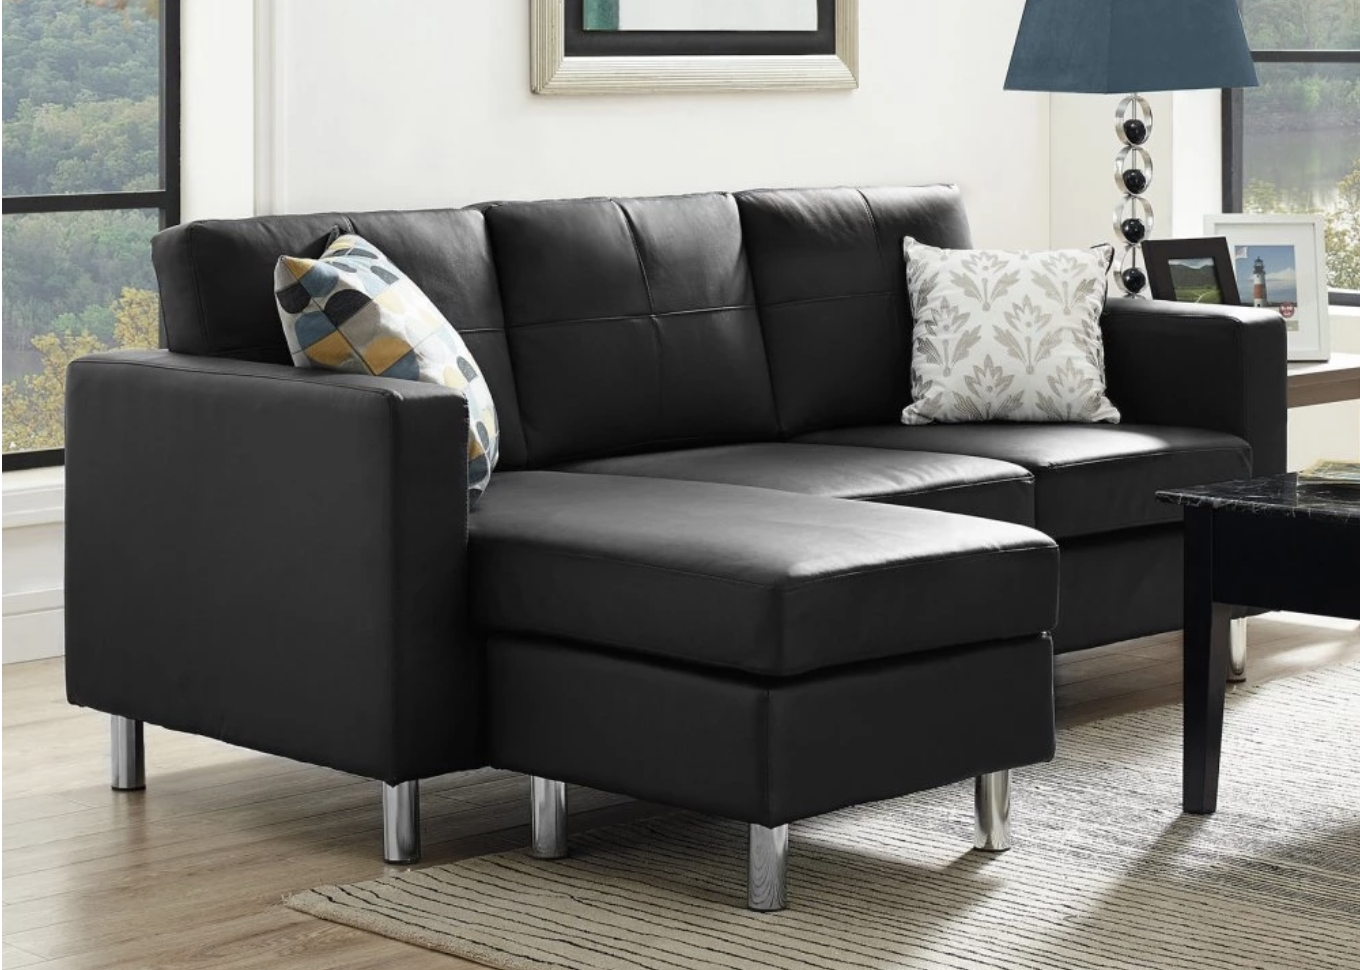 75 Modern Sectional Sofas For Small Spaces (2018) Intended For 100X100 Sectional Sofas (View 8 of 10)